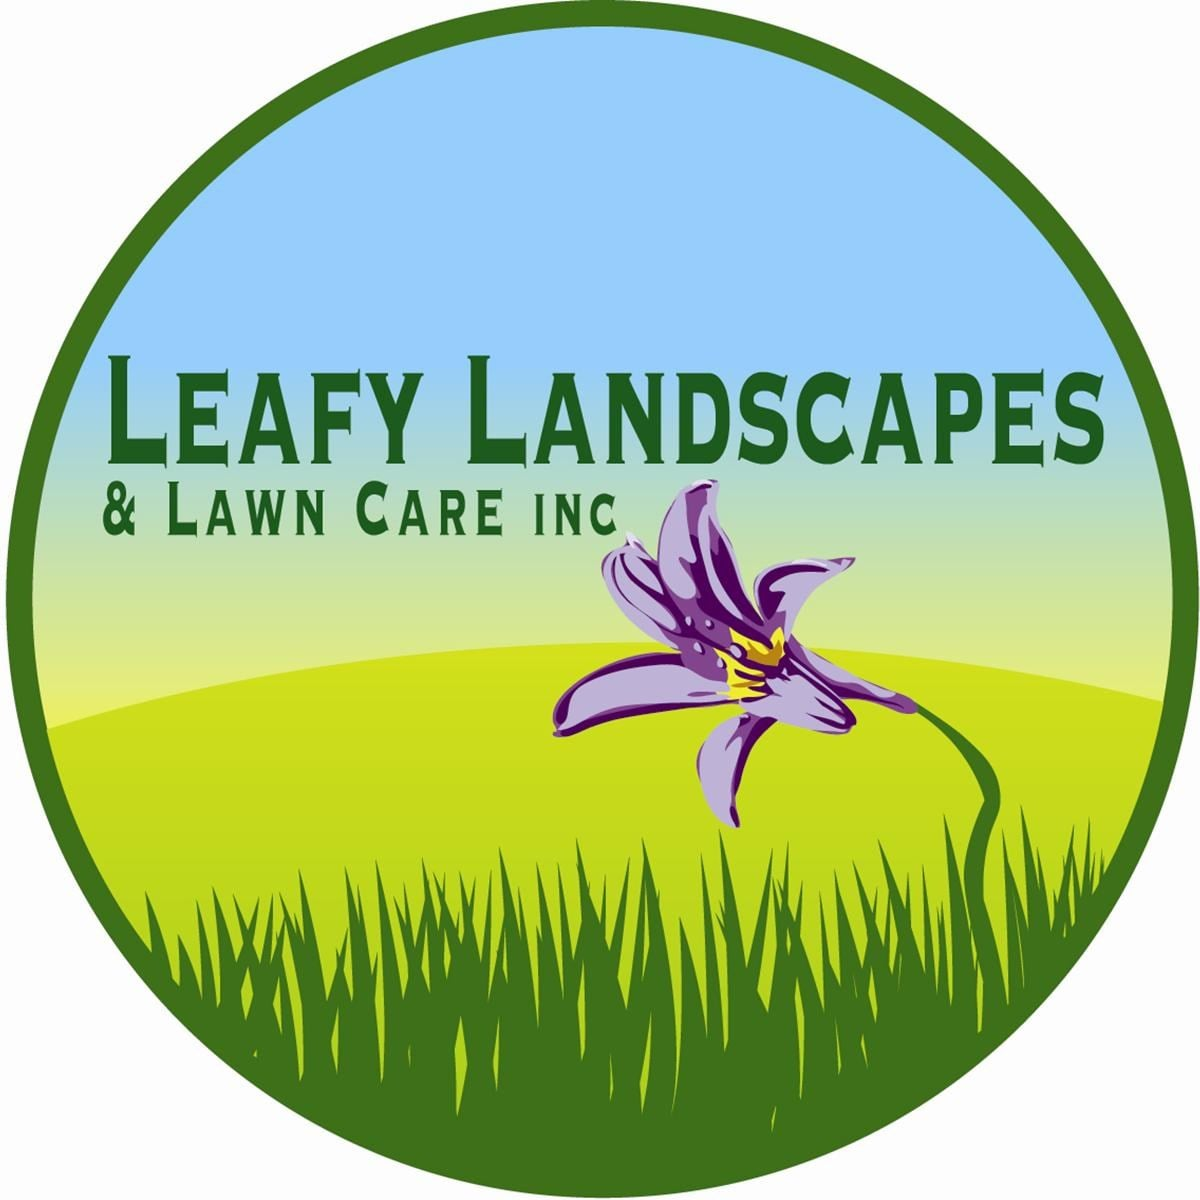 Leafy Landscapes & Lawn Care, Inc.